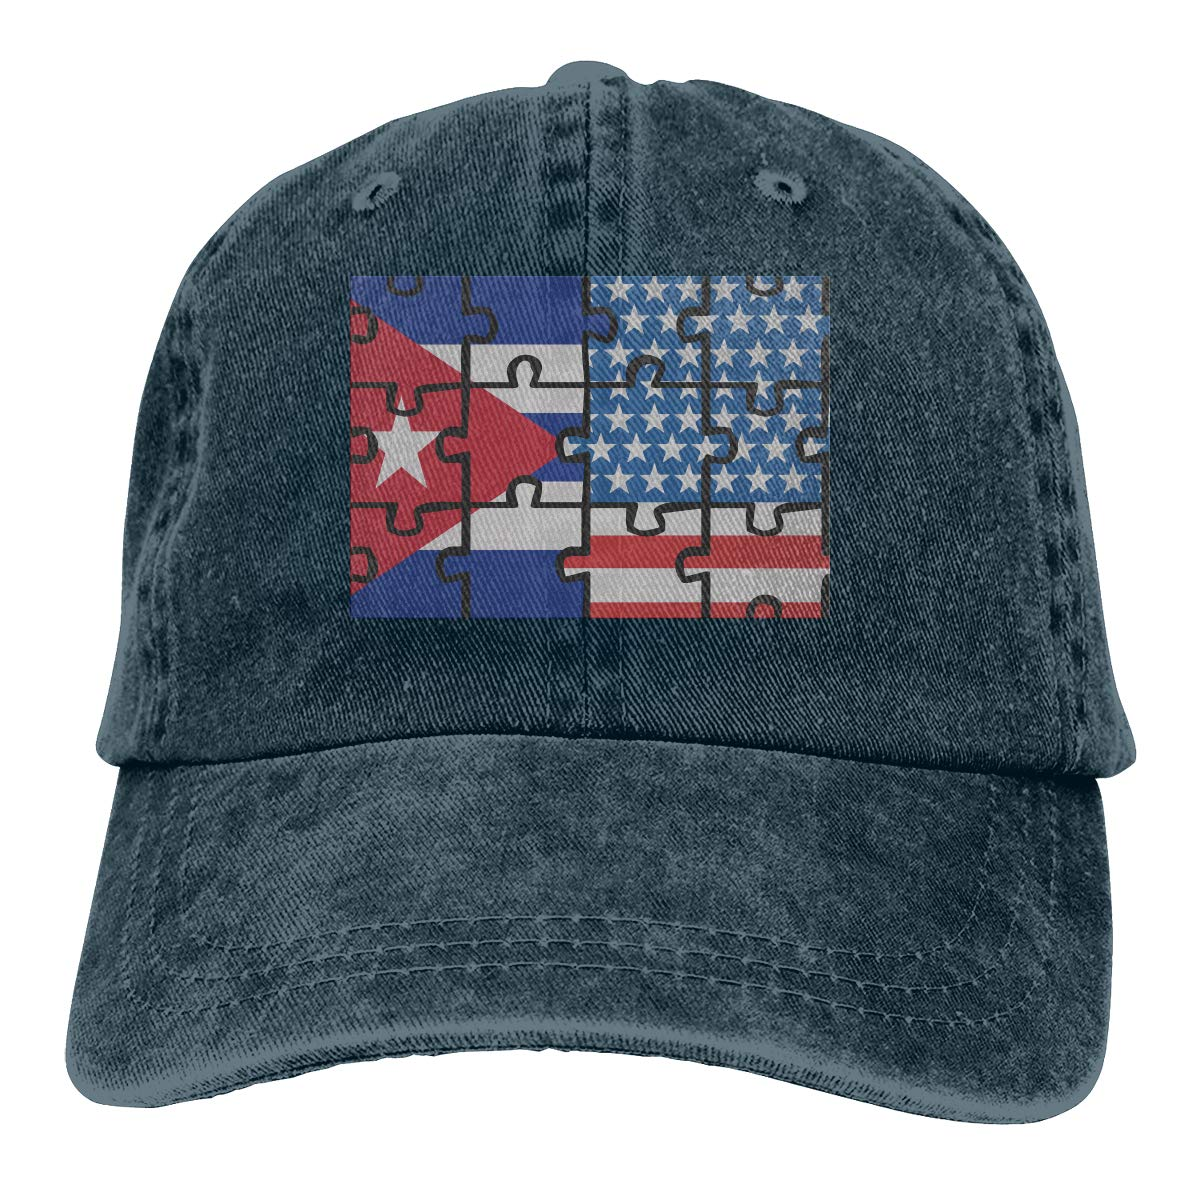 TBVS 77 Men Women Distressed Cotton Denim Baseball Cap Cuba USA Flag Puzzle Adjustable Plain Cap